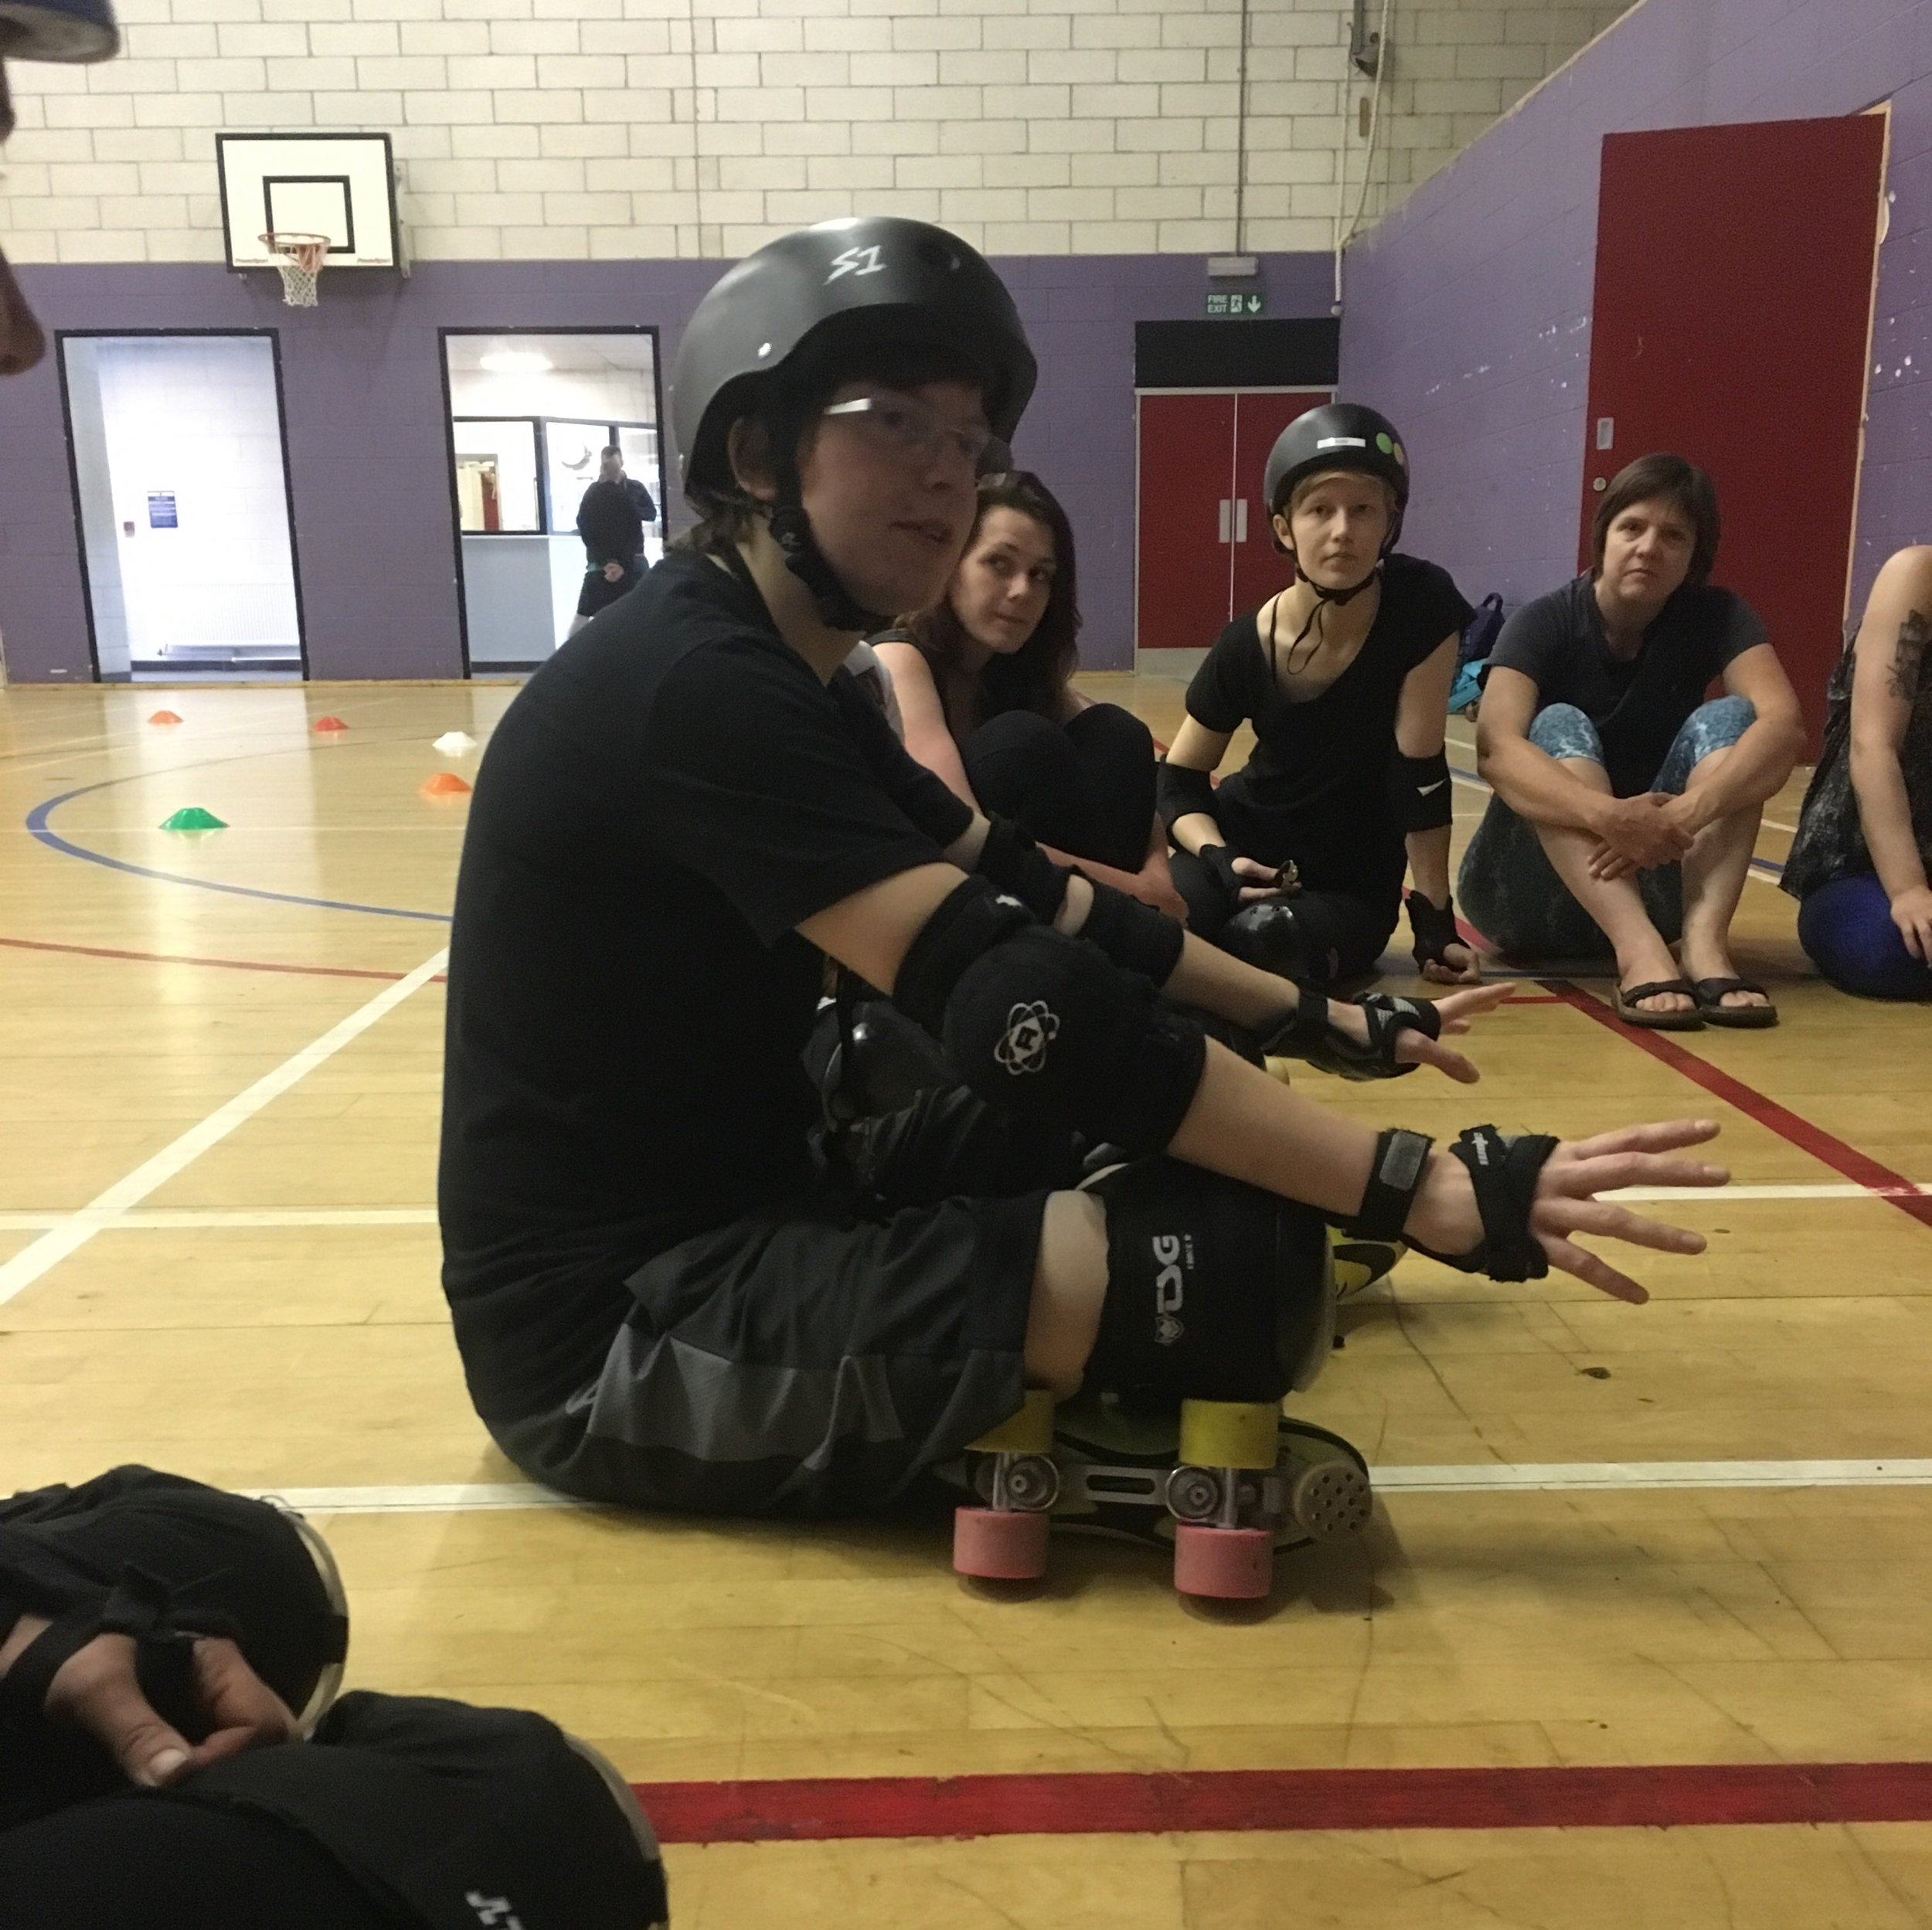 Our rookie skaters learning more about actual gameplay from self-confessed roller derby geek, Feminist Killjoy.